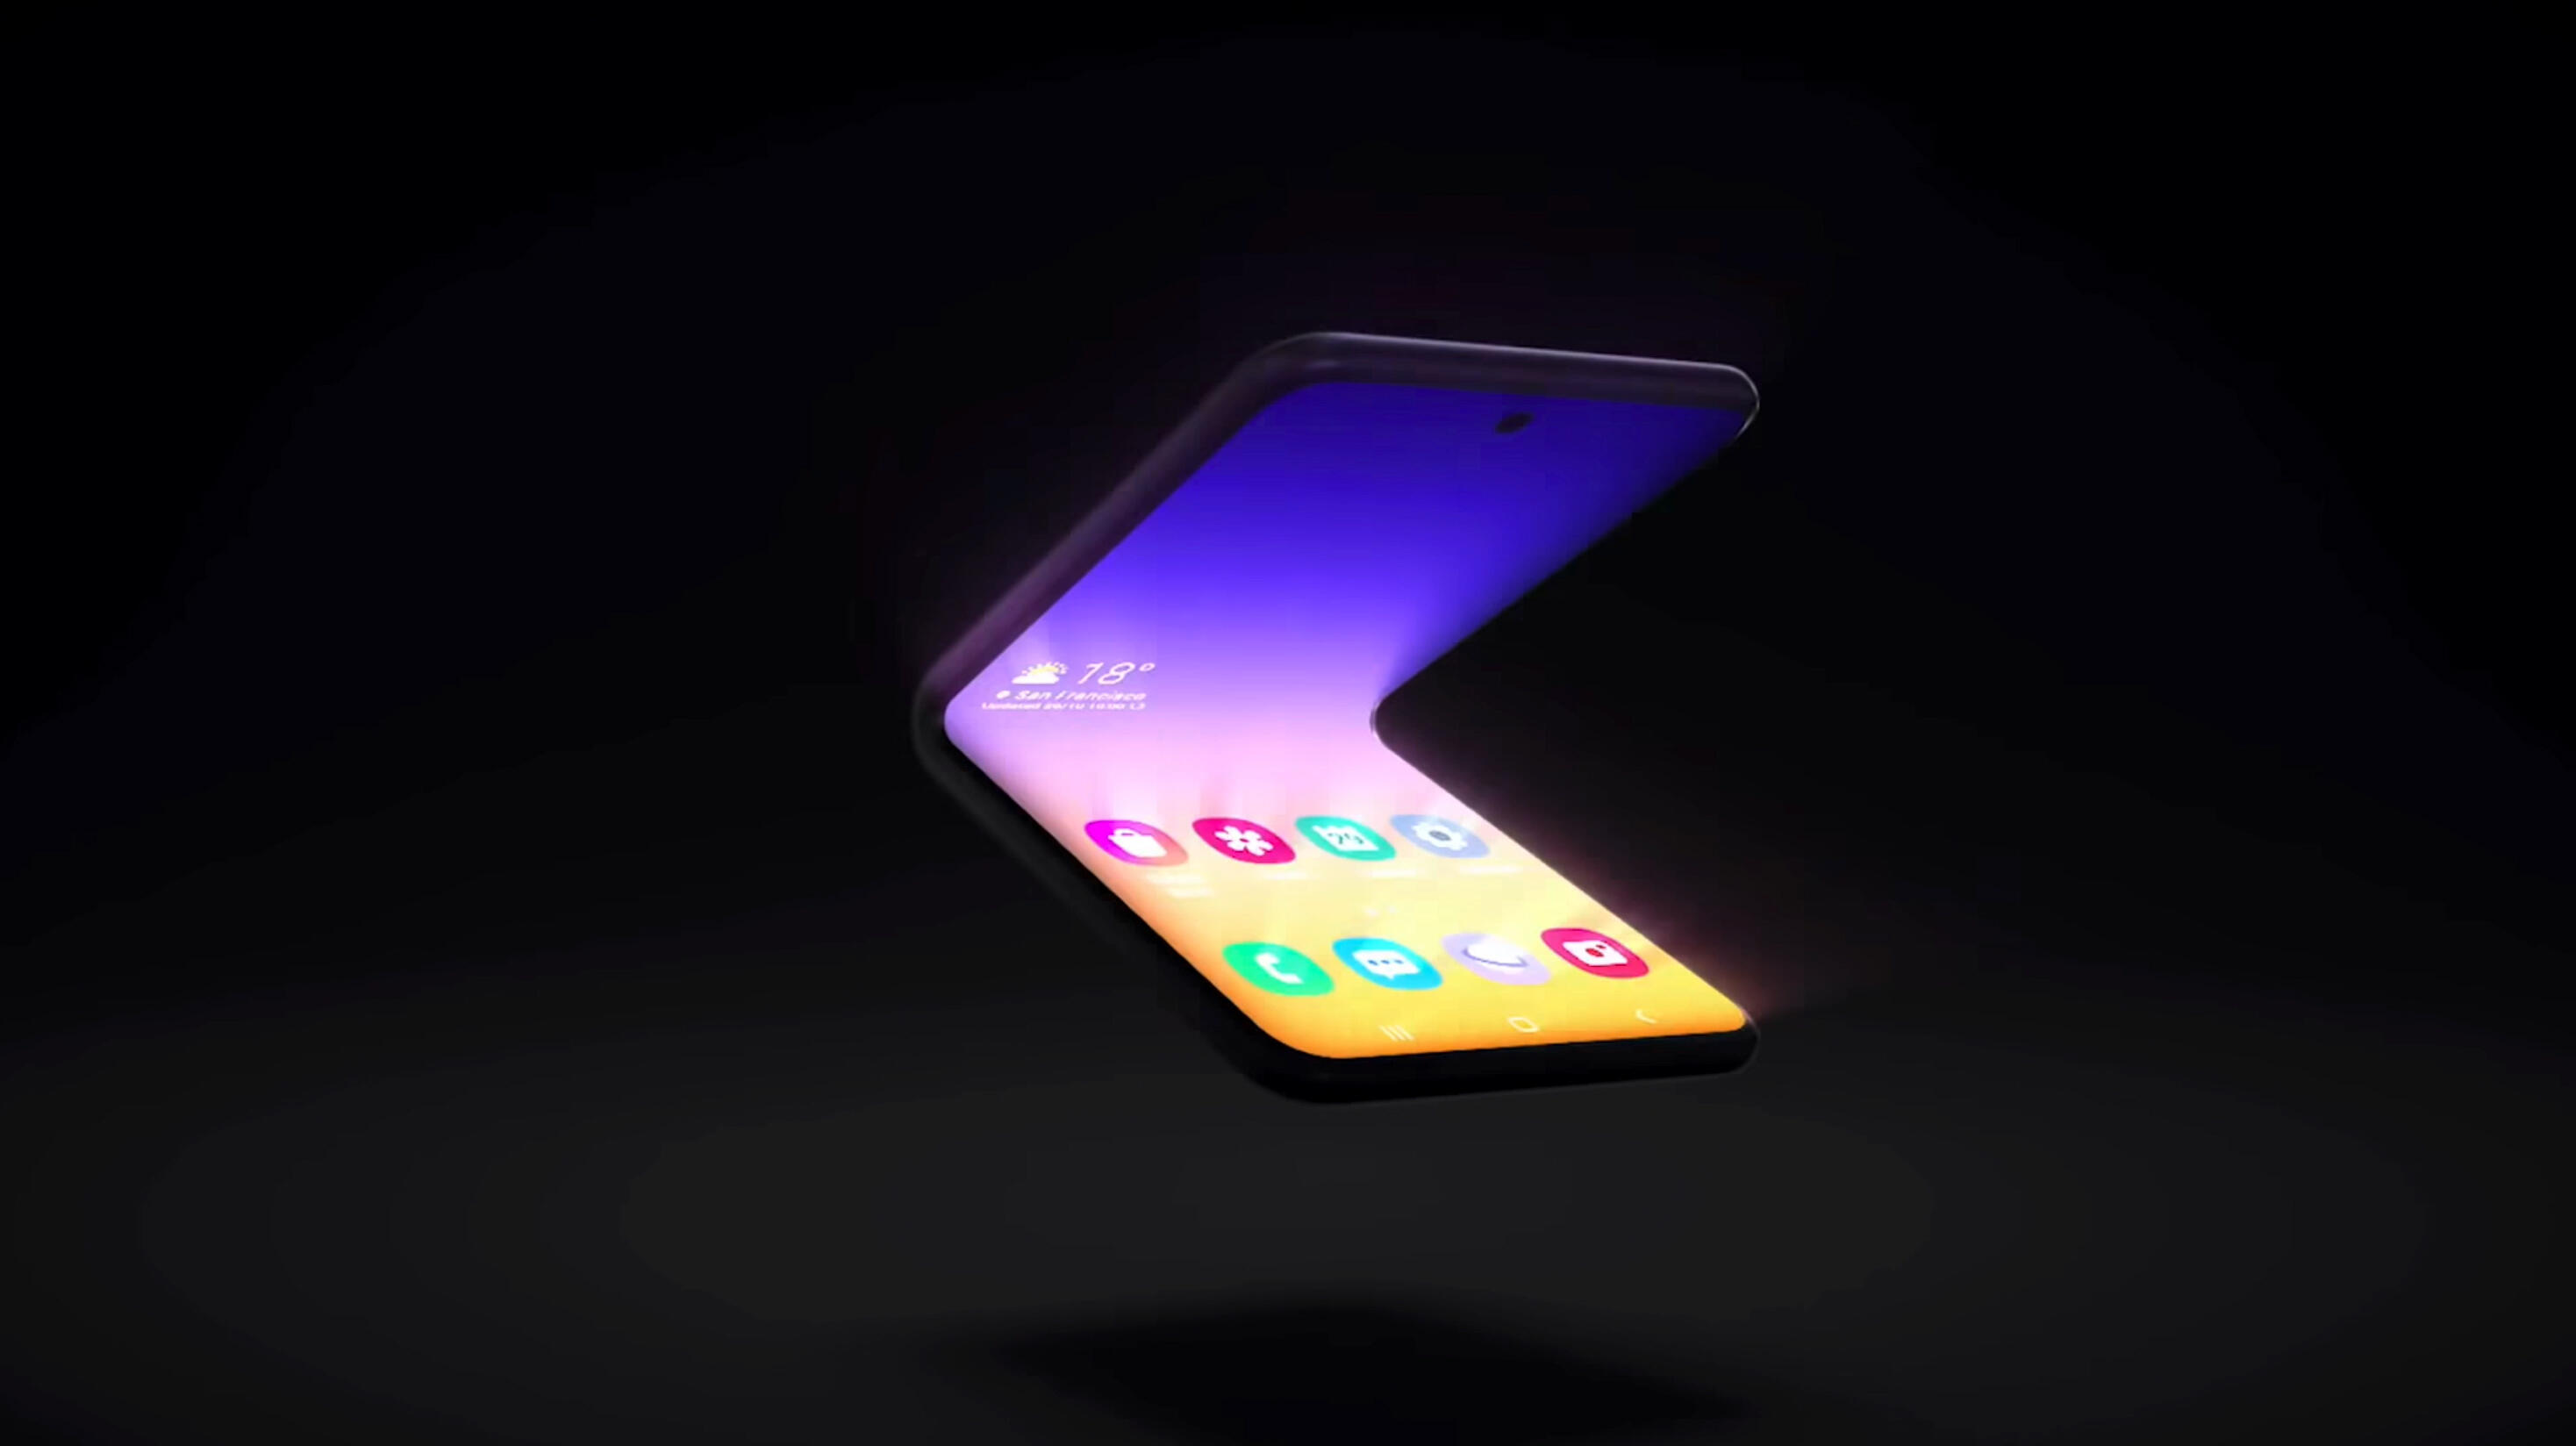 Video: Pricing and availability for the Galaxy Z Flip may have leaked